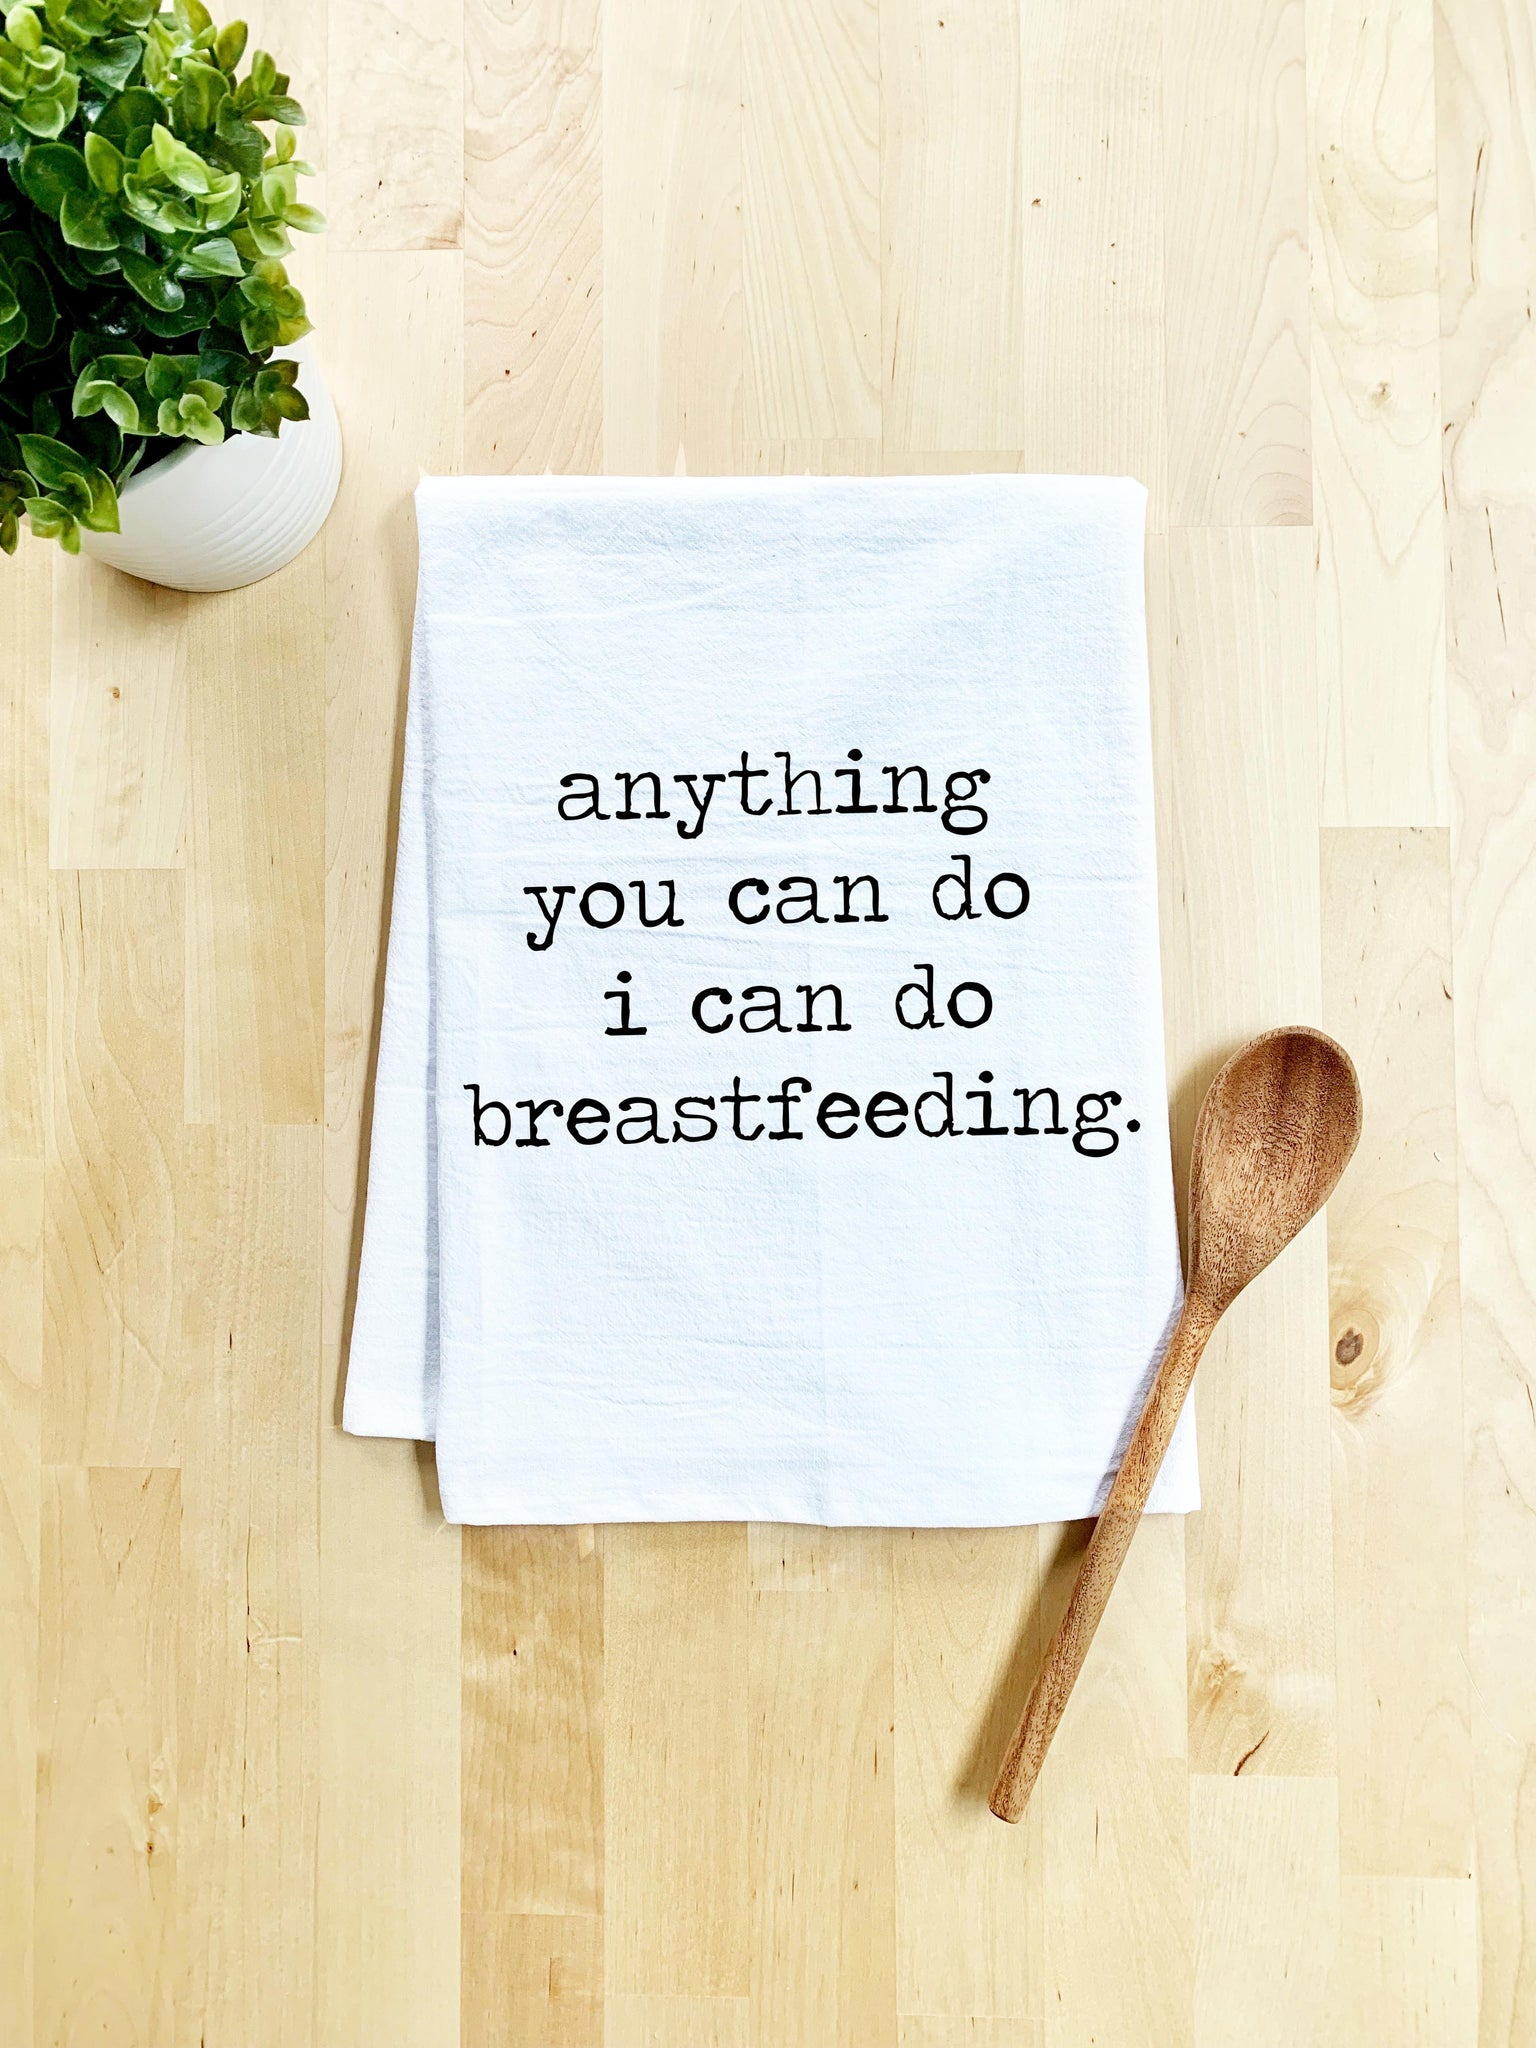 Anything You Can Do, I Can Do Breastfeeding Dish Towel - White Or Gray - MoonlightMakers